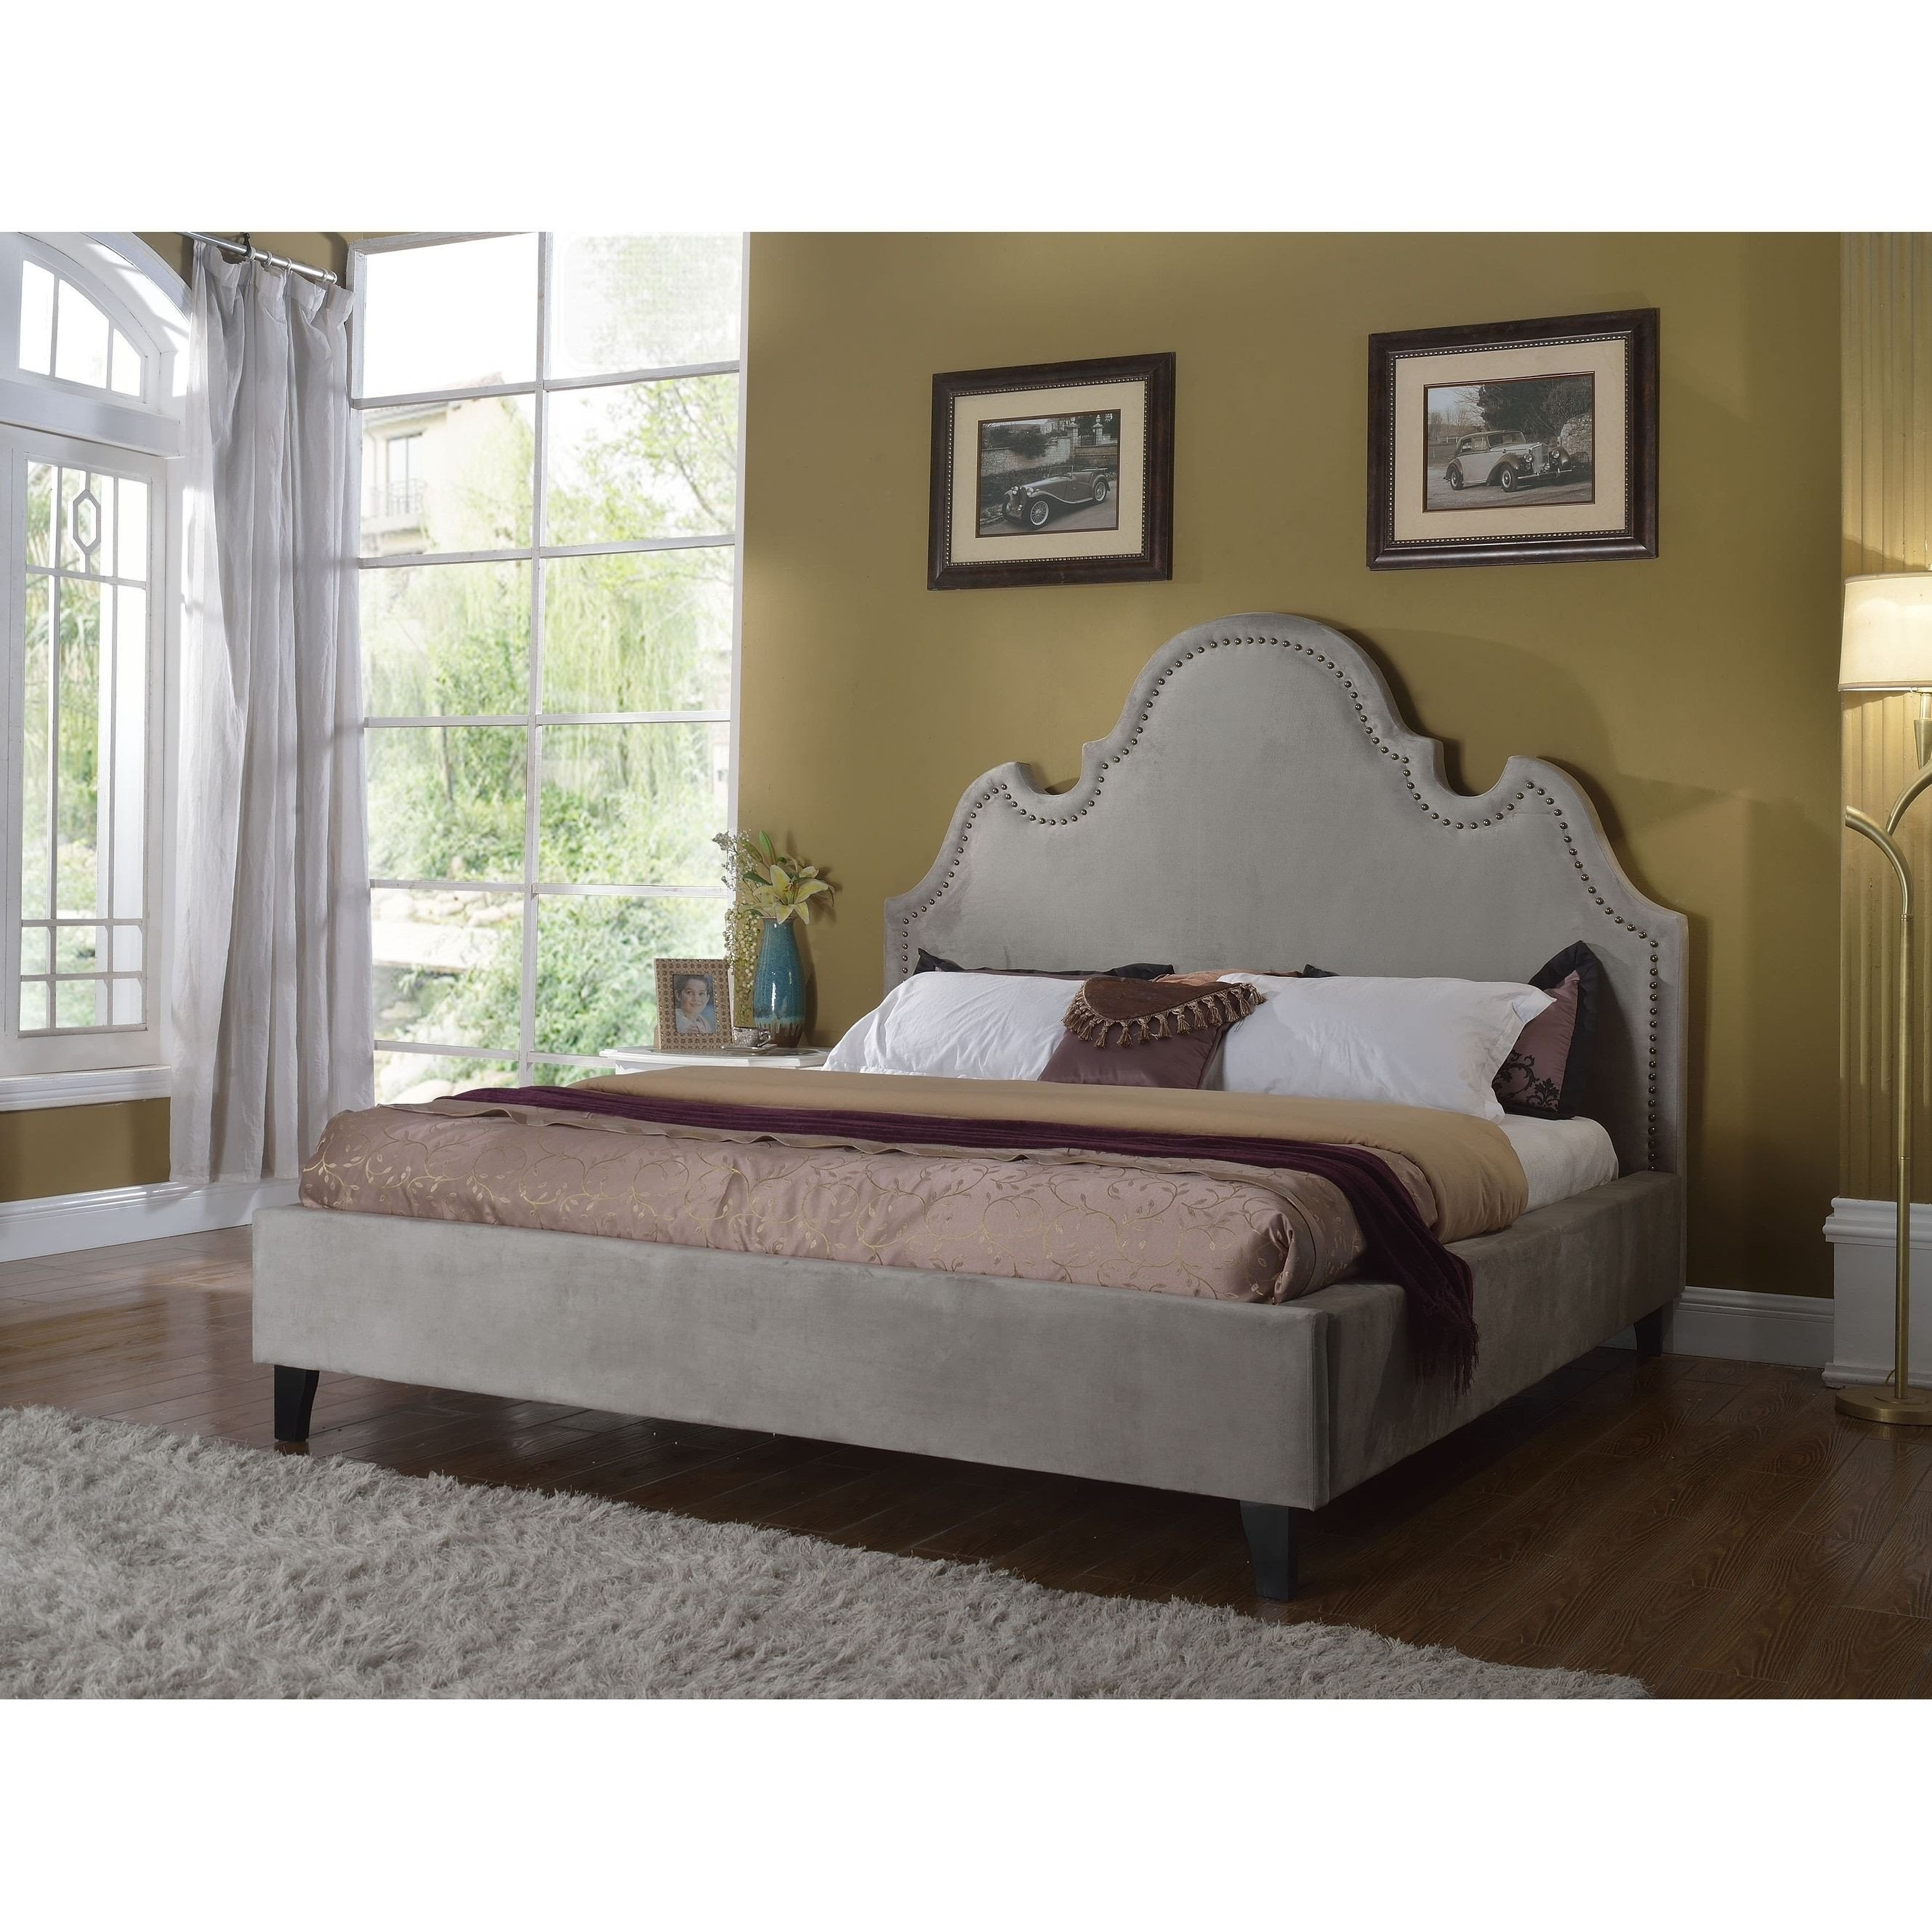 Best Quality Bedroom Furniture Unique Best Master Furniture Gray Upholstered Platform Bed